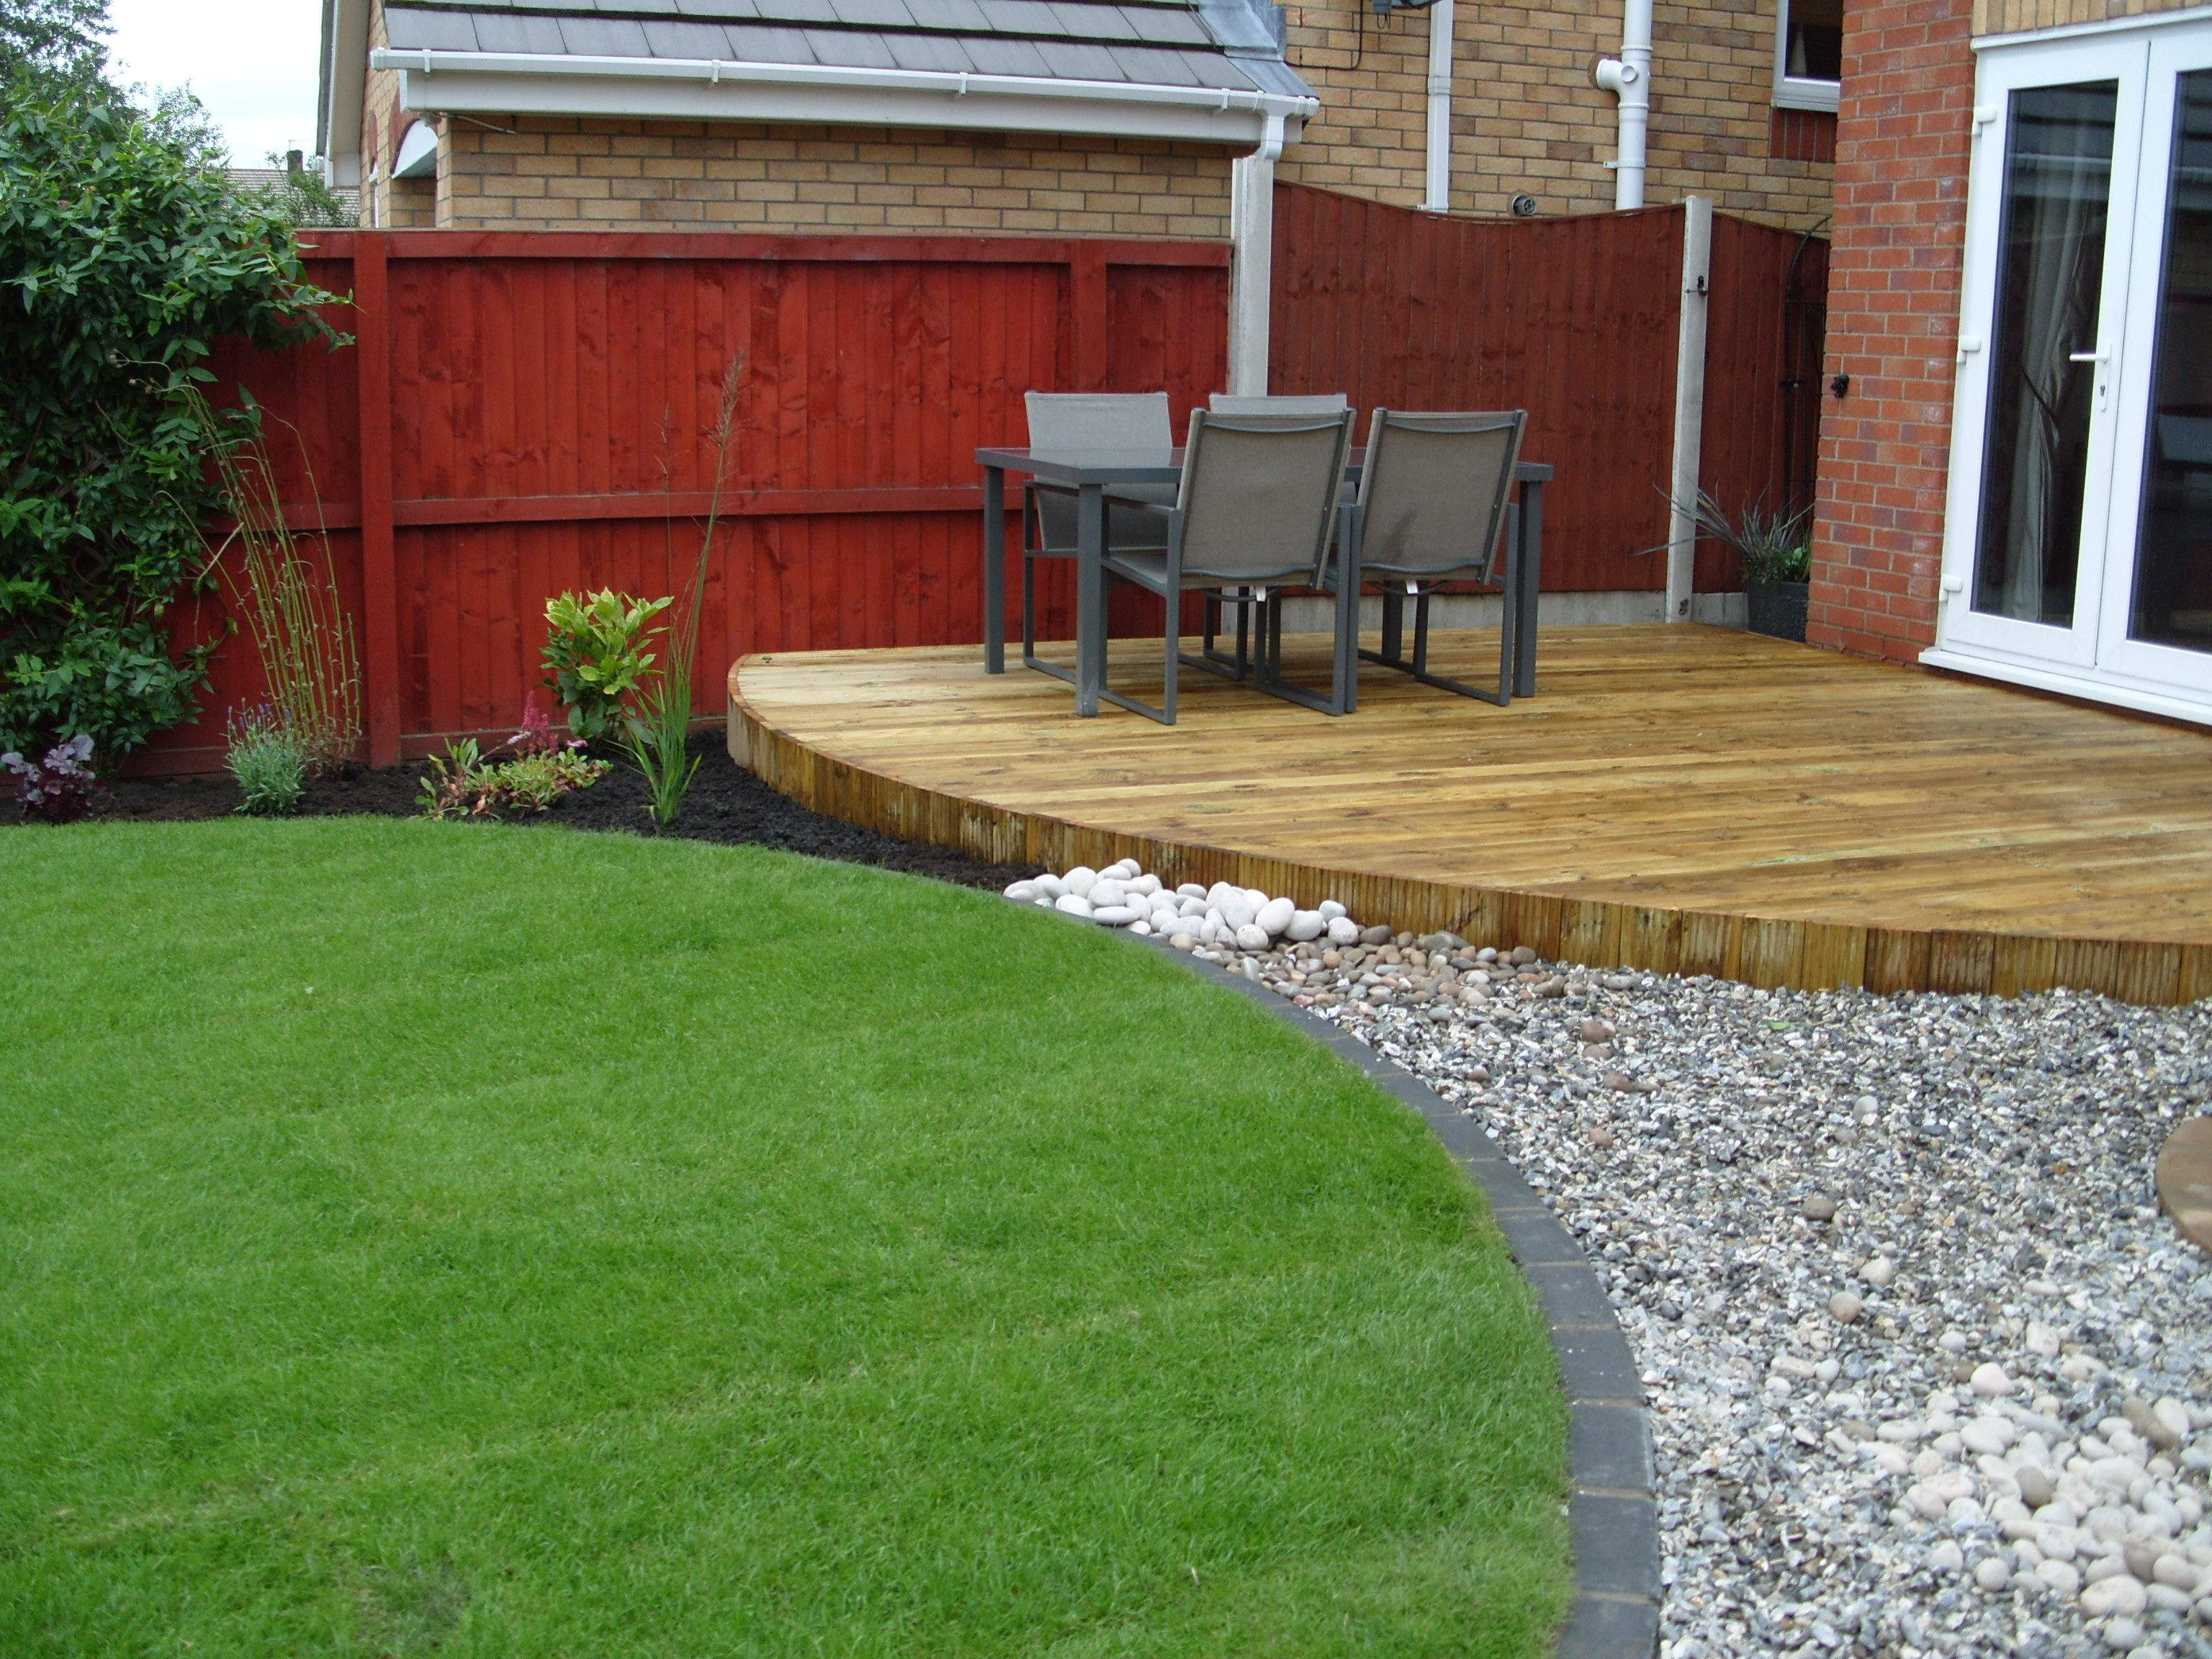 Garden design ideas on pinterest garden design small for Garden decking design ideas